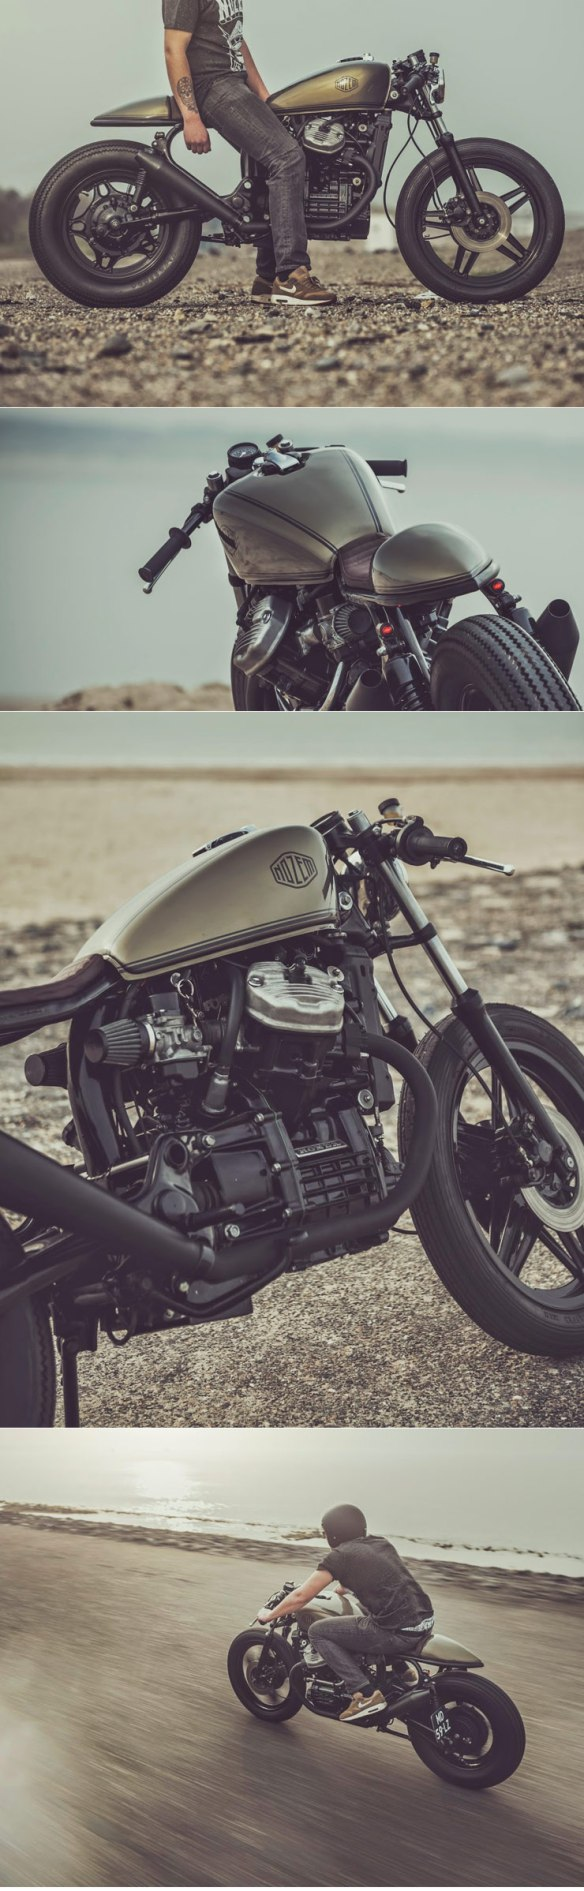 Moto-Mania World Roundup :: Vol. 10